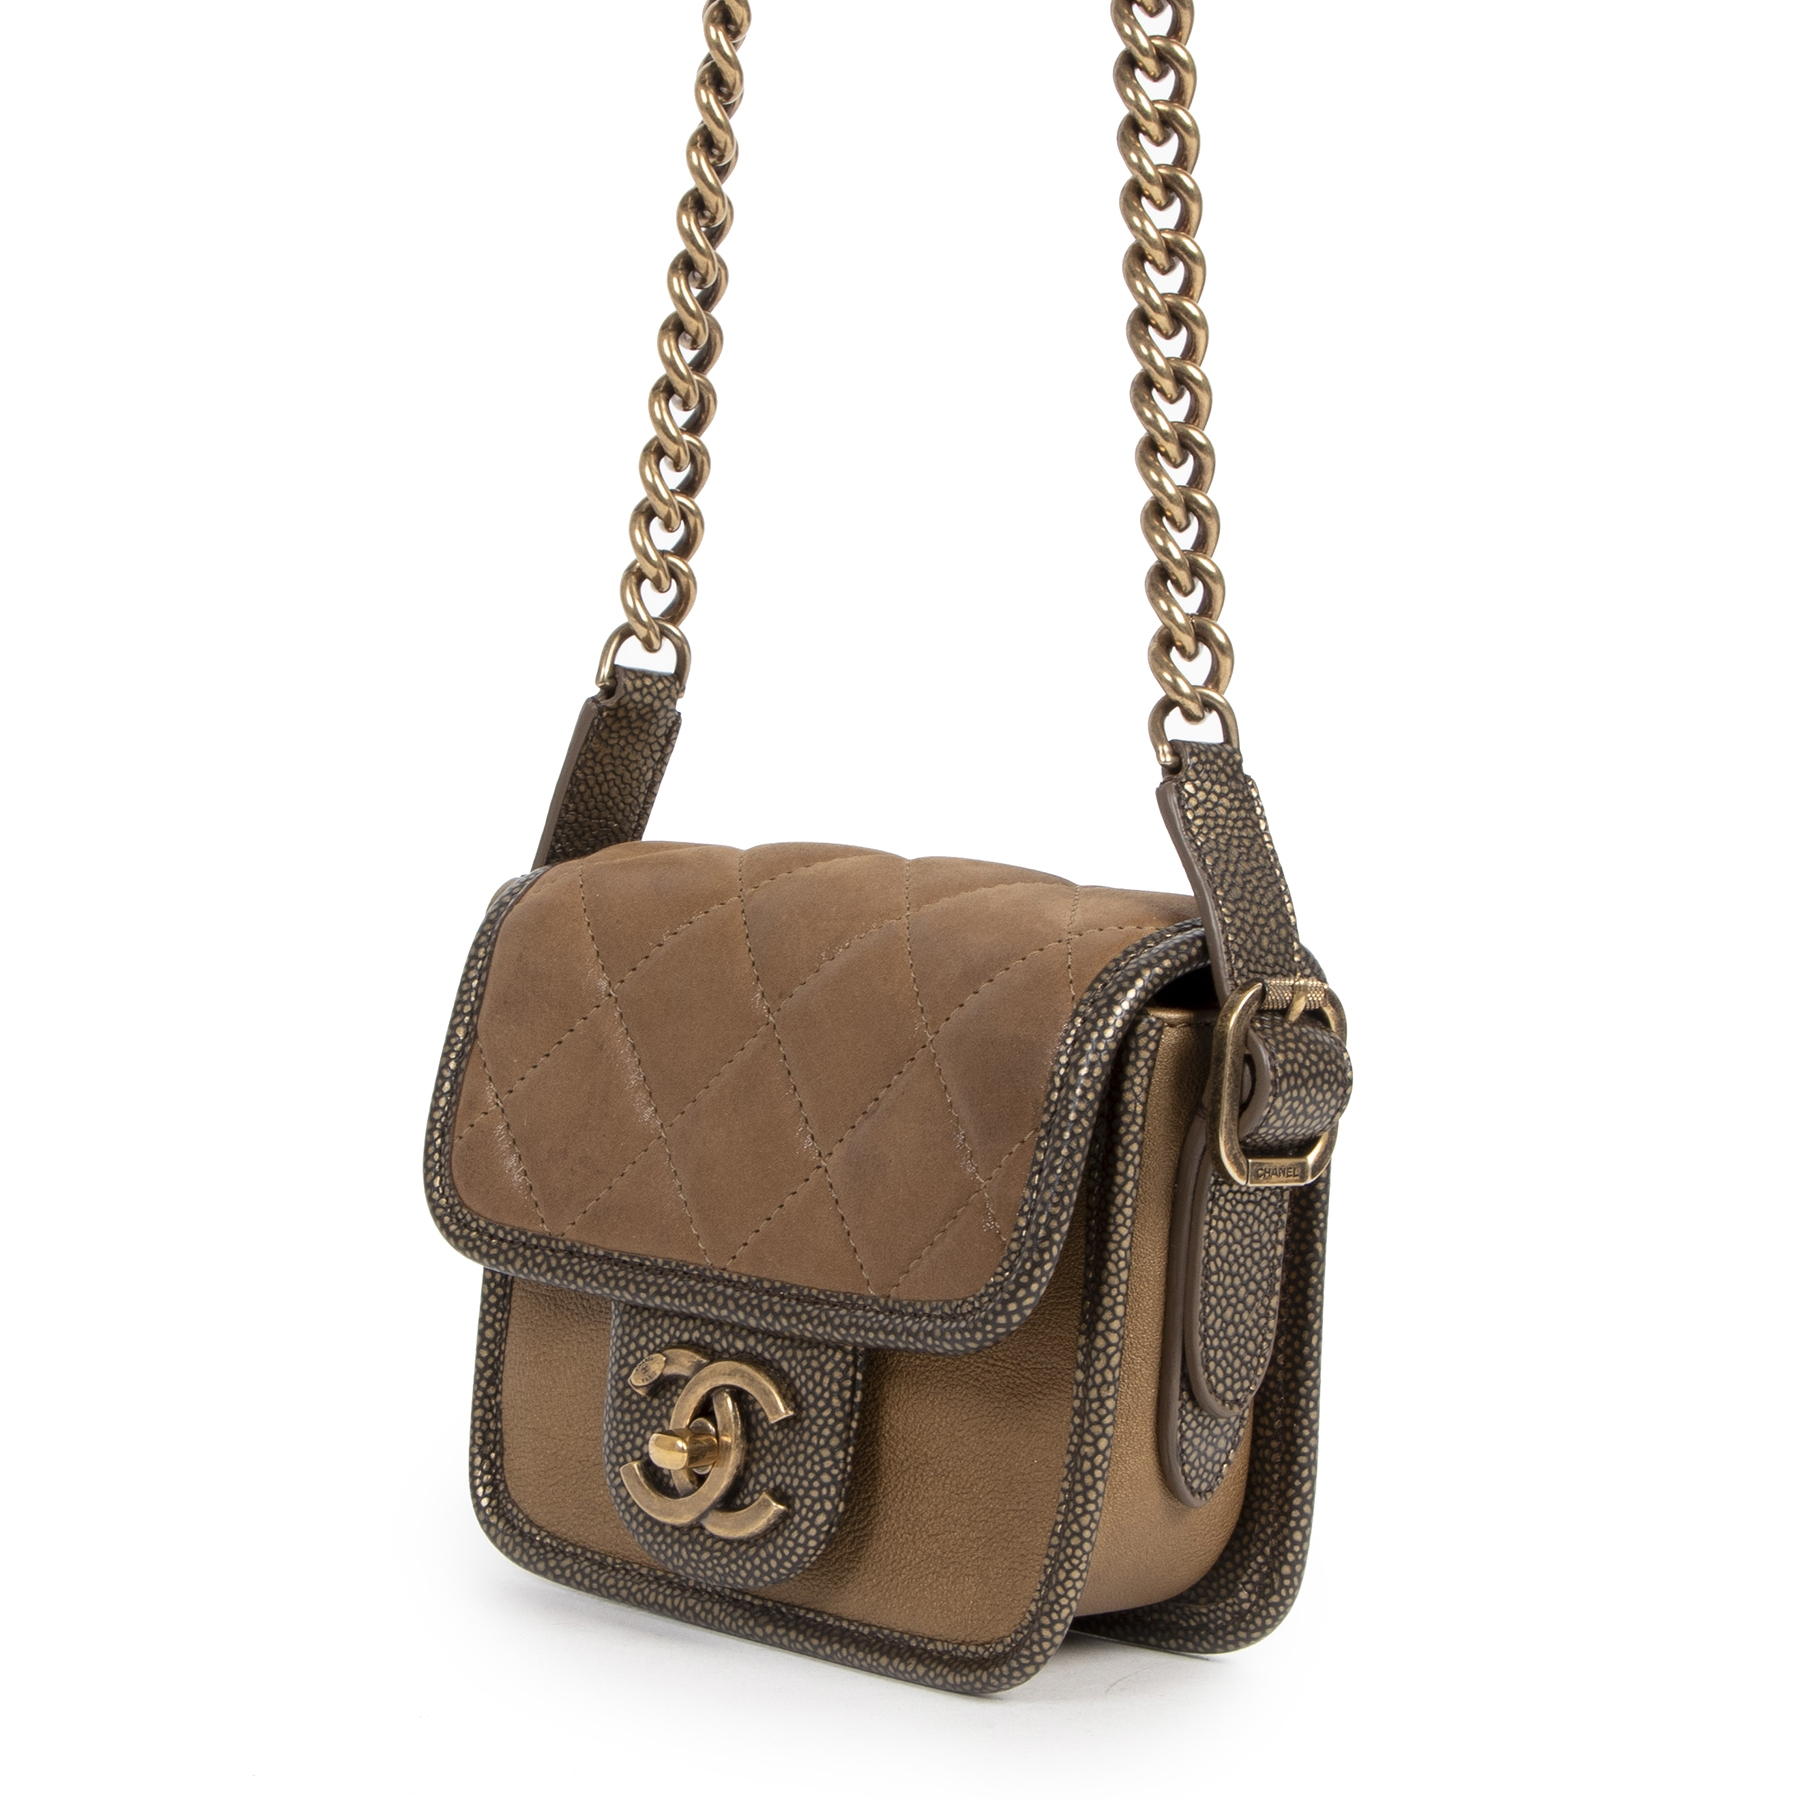 buy authentic secondhand Chanel Gold Leather Paris-Bombay Back To School Mini Crossbody Bag at the right price online safe and secure at LabelLOV webshop Antwerp Belgium